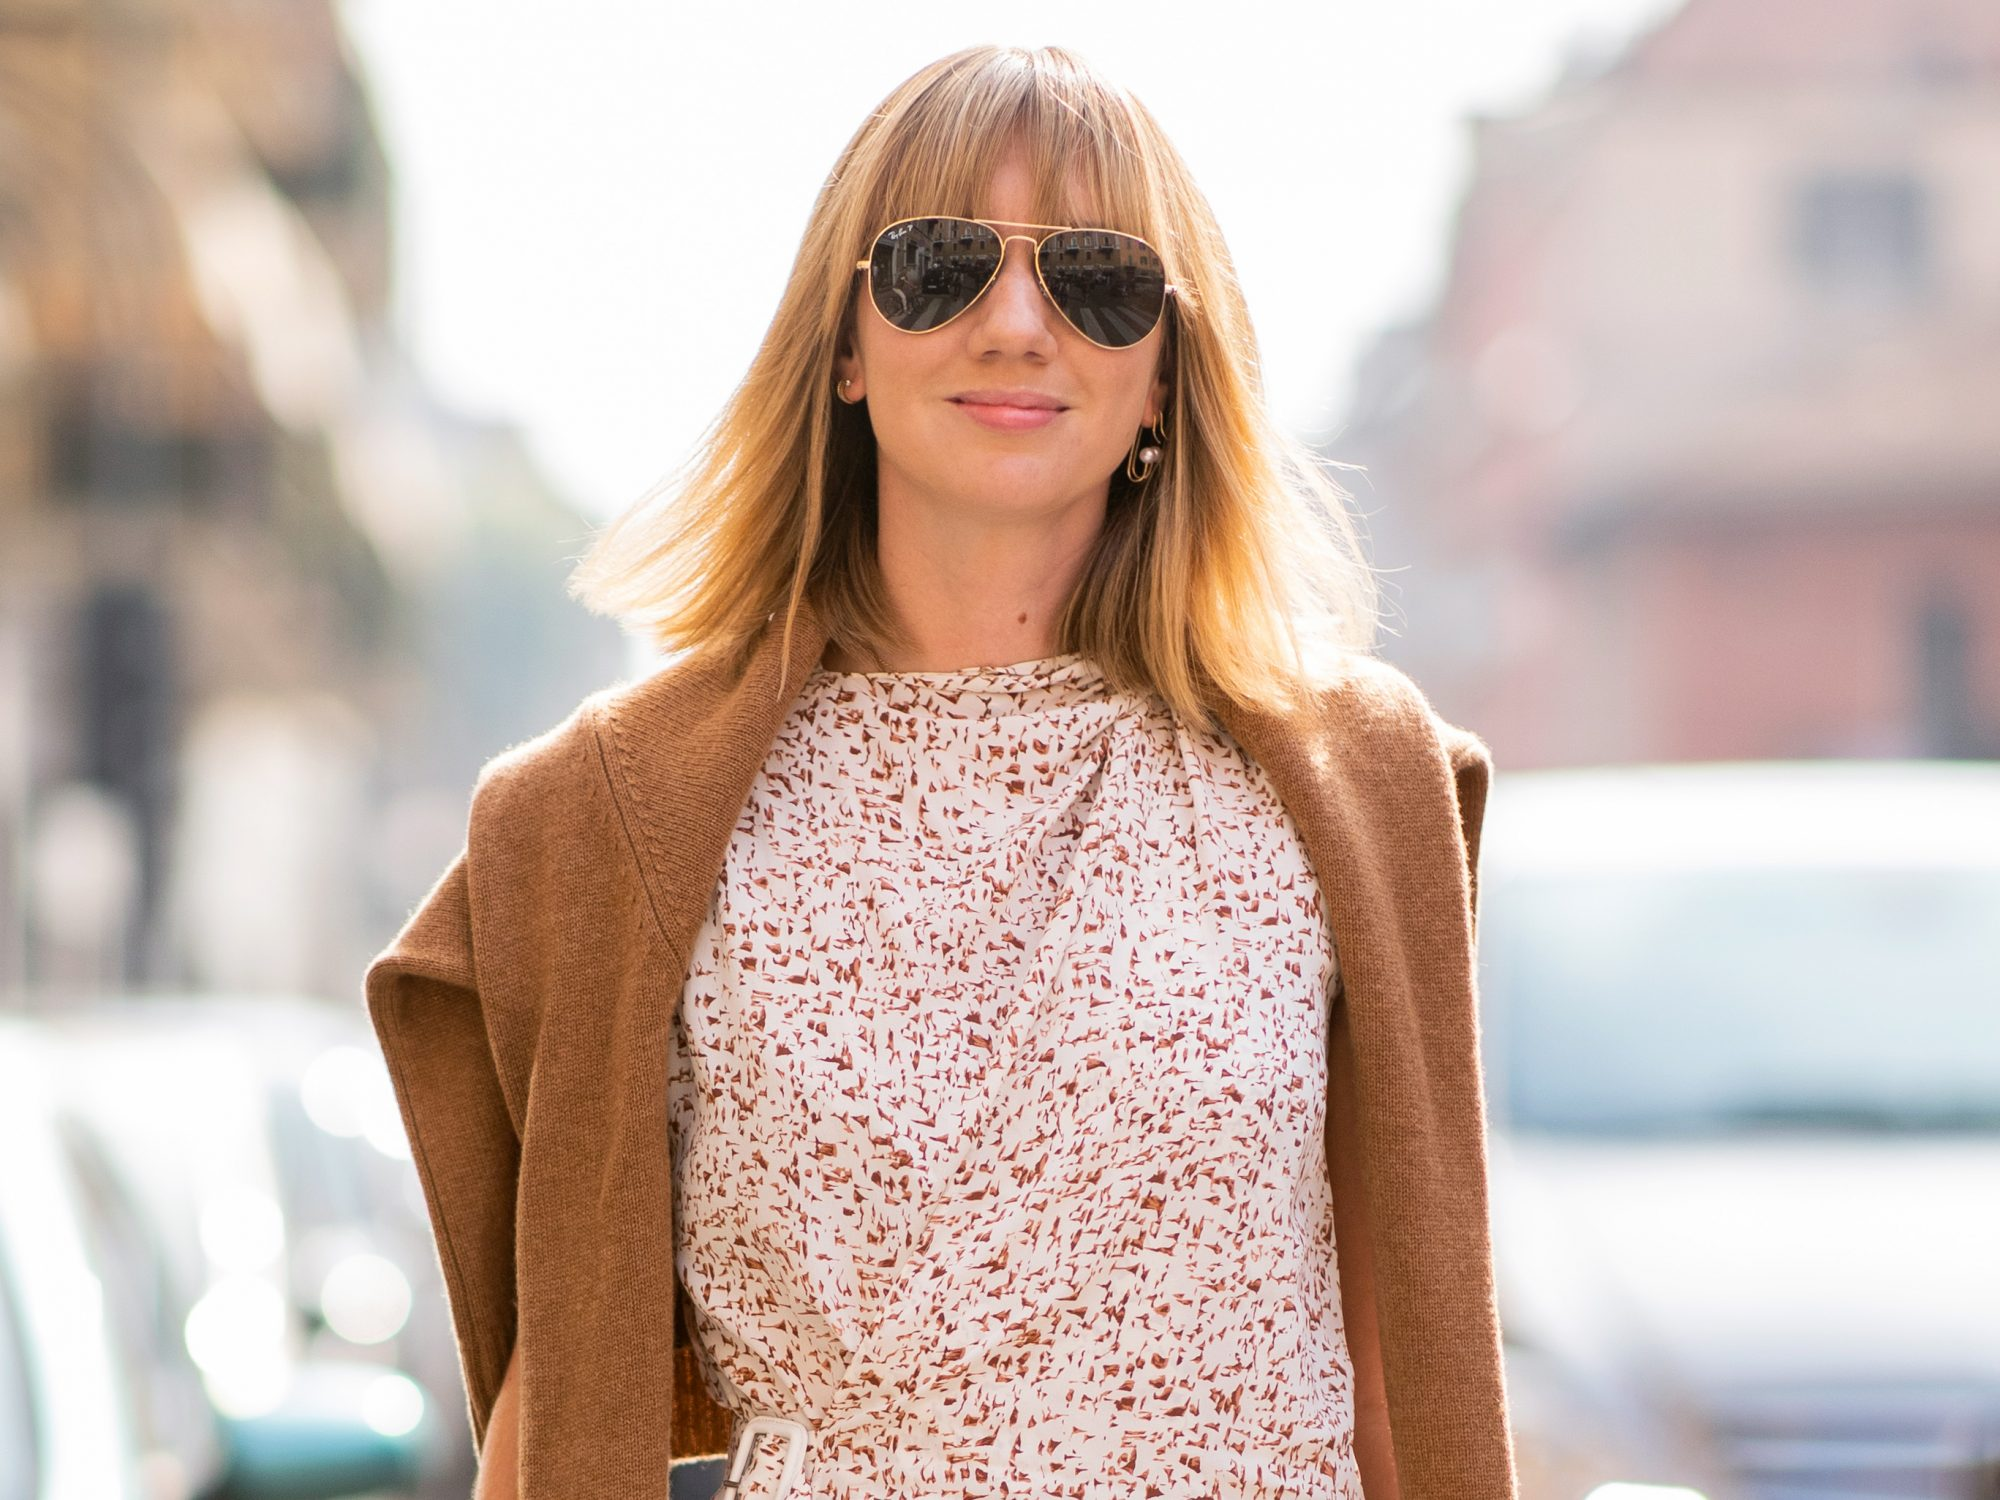 This Hack Will Fix The Most Annoying Thing About Having Bangs